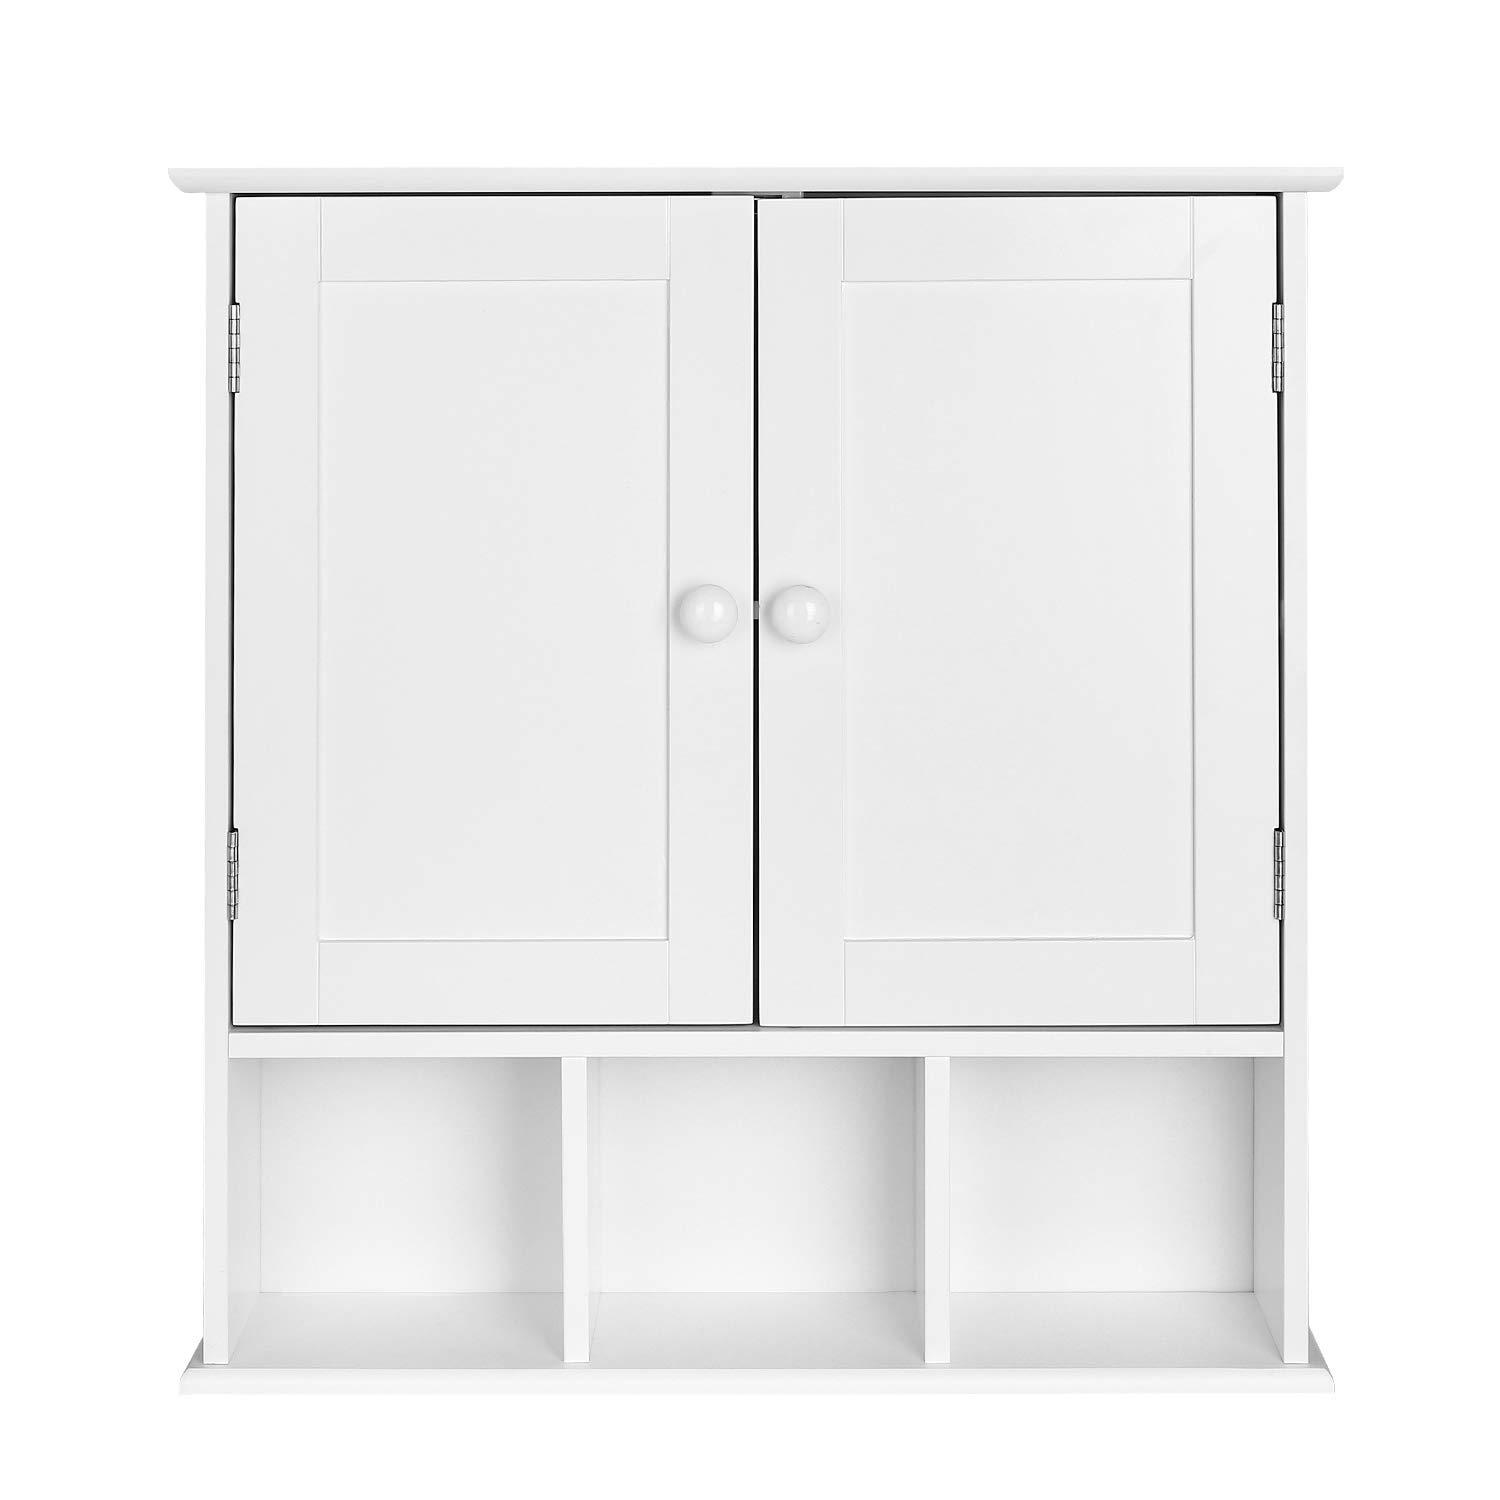 Homfa Wall Bathroom Cabinet Storage Cupboard Pastoral Wooden Storage Unit with 2 Doors and 3 Compartments White HF